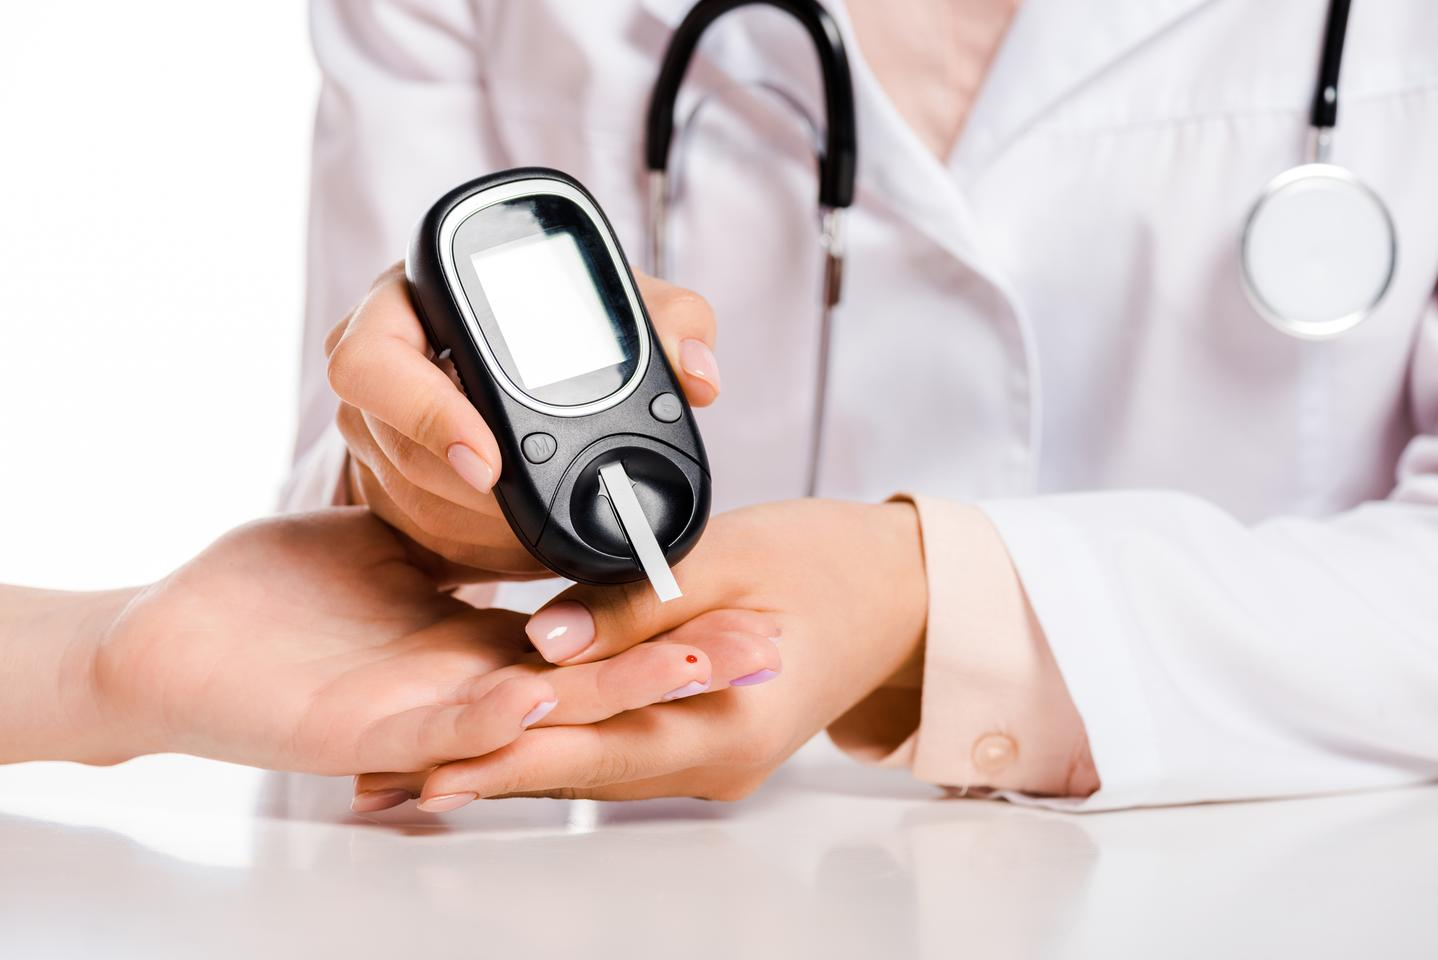 Oxford scientists have found that high blood glucose levels can affect stem cells and the immune cells they produce, leading to an increased risk of cardiovascular disease